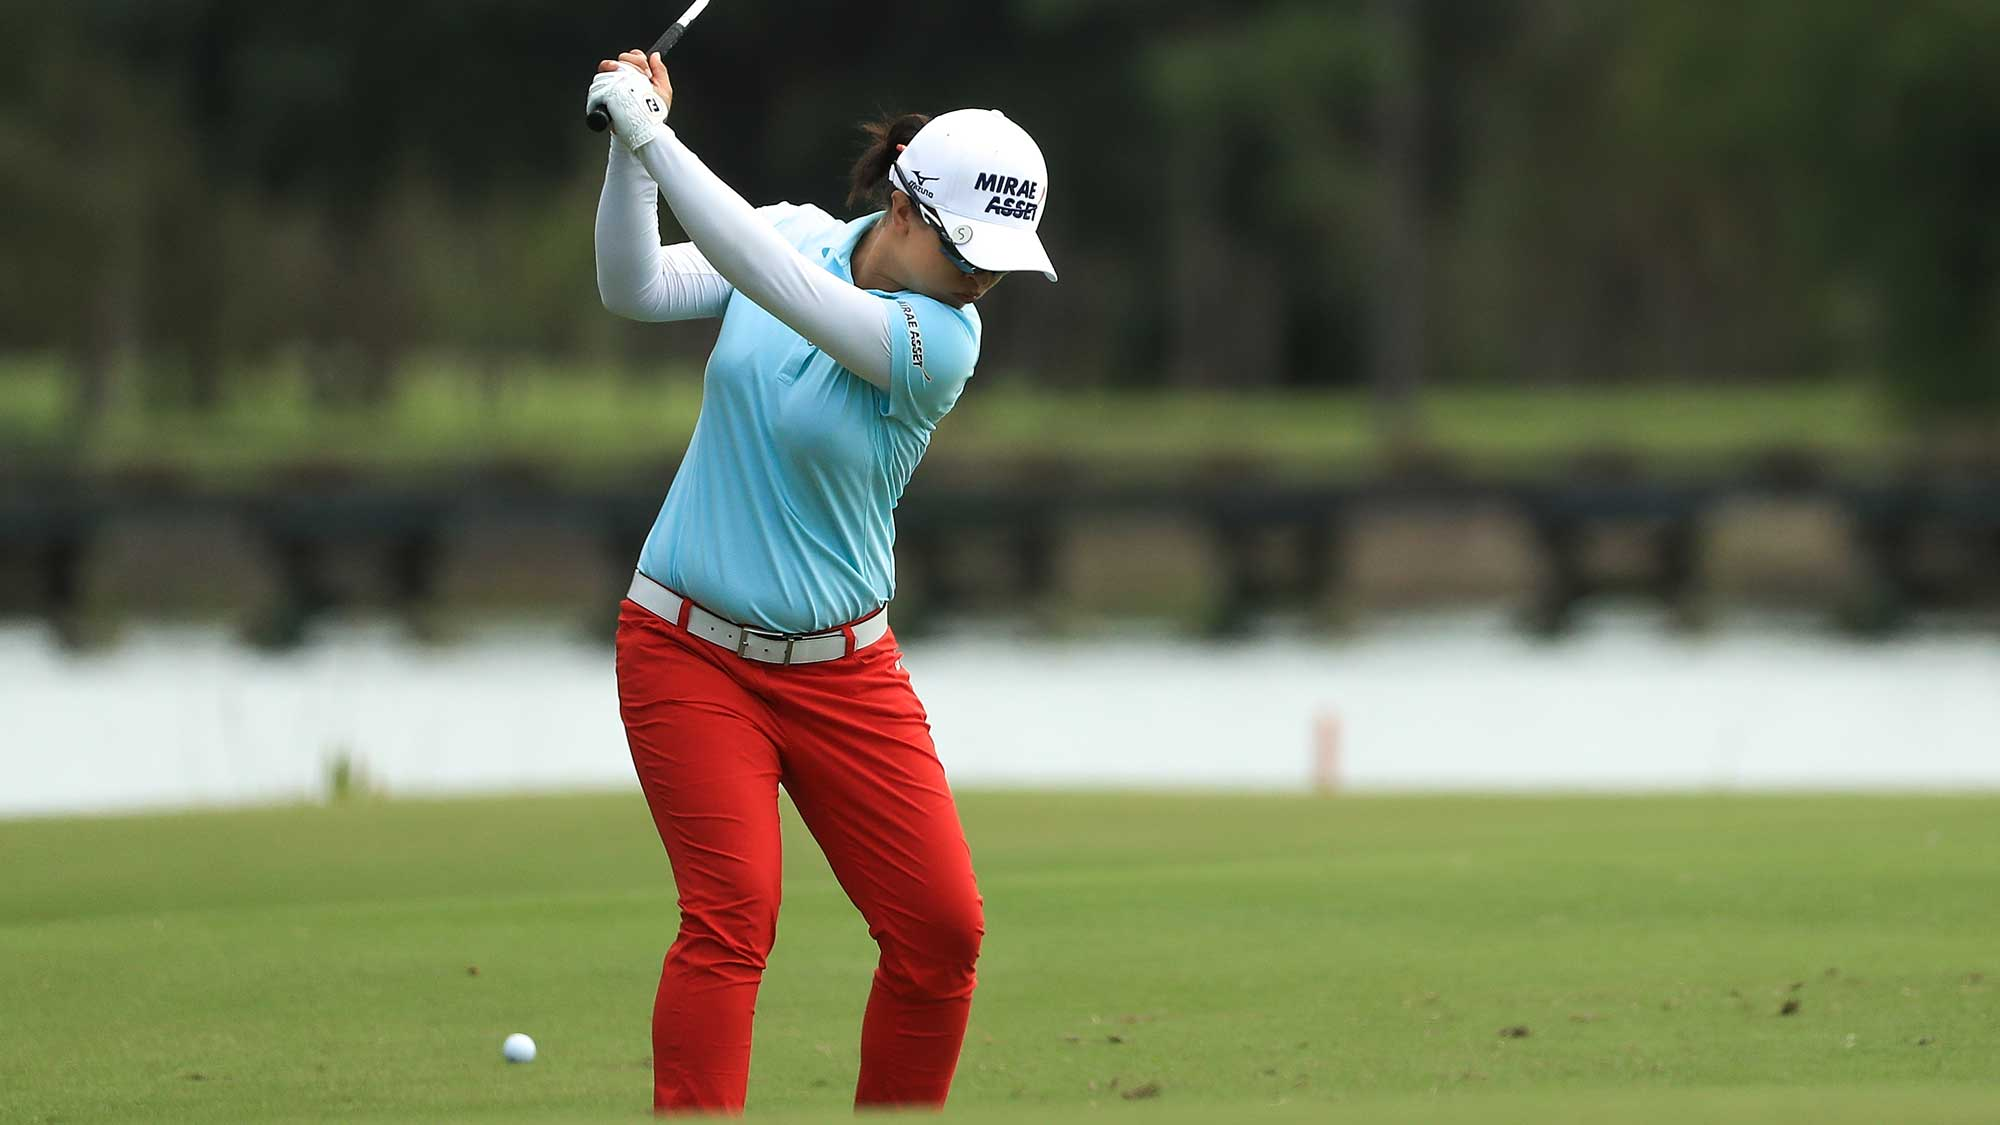 Sei Young Kim of Korea plays her second shot on the first hole during the final round of the LPGA CME Group Tour Championship